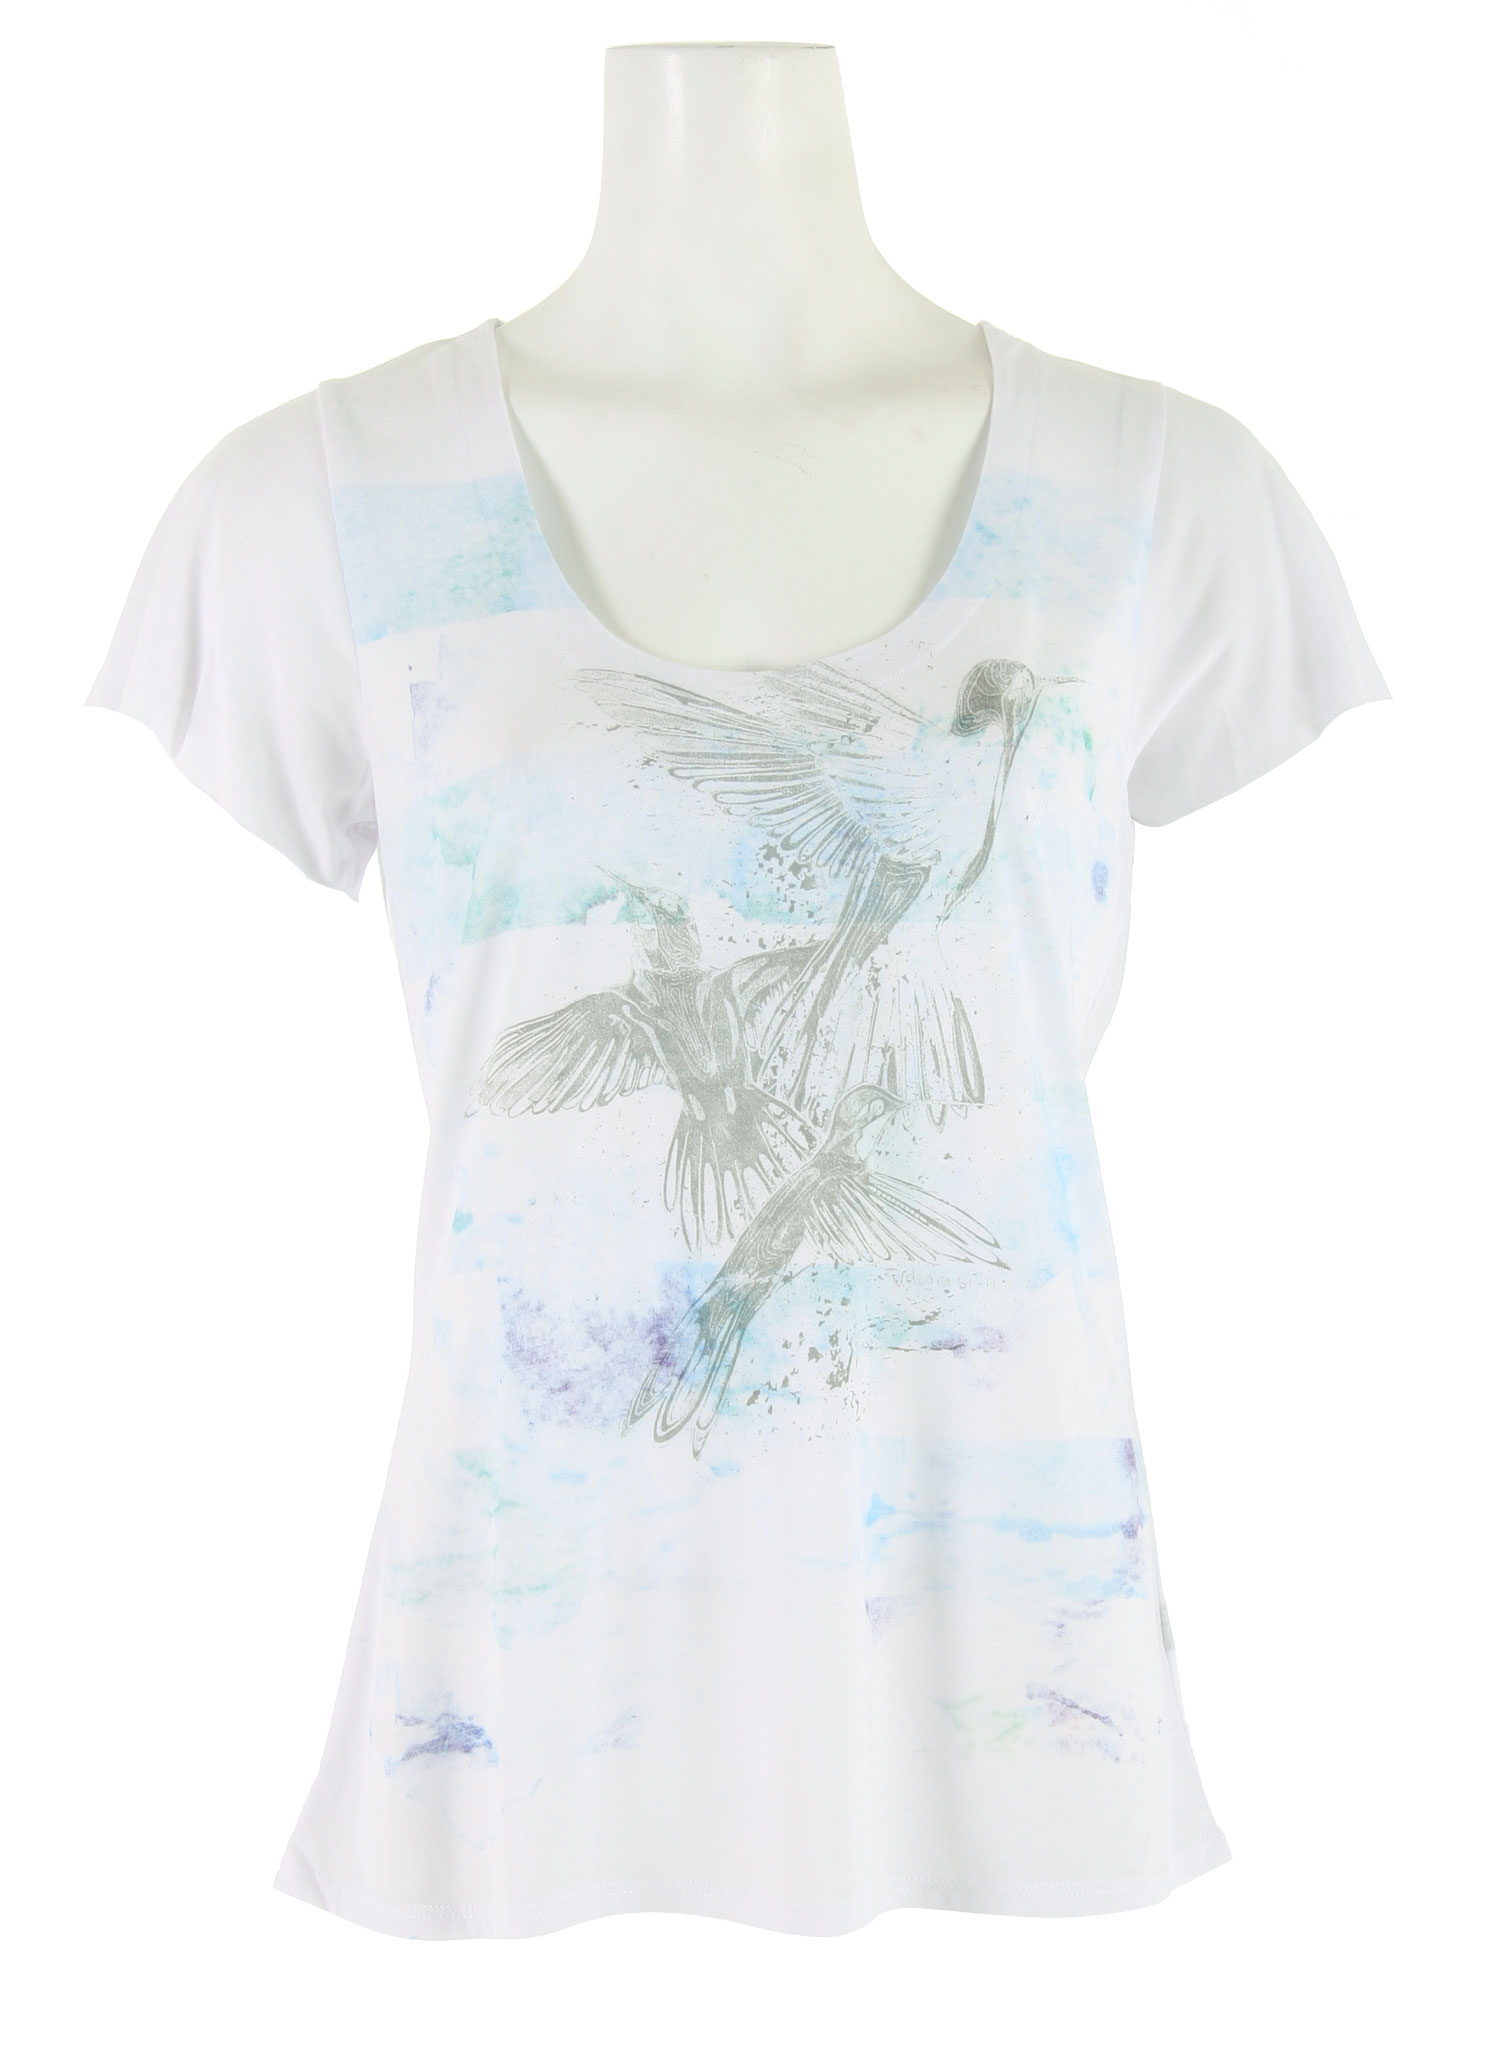 "Surf This Volcom floral cotton and viscose blend knit jersey T-shirt is the perfect fashion statement. Pretty and flirty, with flutter sleeves and a flattering scoop neck design, this product has the upscale detailing you would expect from Volcom. The 25-inch length means that this shirt will work with nearly any pair of jeans you could pair it with. The design includes four color eco-friendly ink, artistically rendered birds with a contemporary pastel flair.Key Features of the Volcom Floral Haze Lyric T-Shirt: 65% Polyester/35% Viscose Jersey, 125Gm. Scoop Neck Tee With Flutter Sleeves And Shirttail Back. Detailed With Layered 4-Color Process Waterbase Ink Screen At Front Body. 25"" Length. - $19.95"